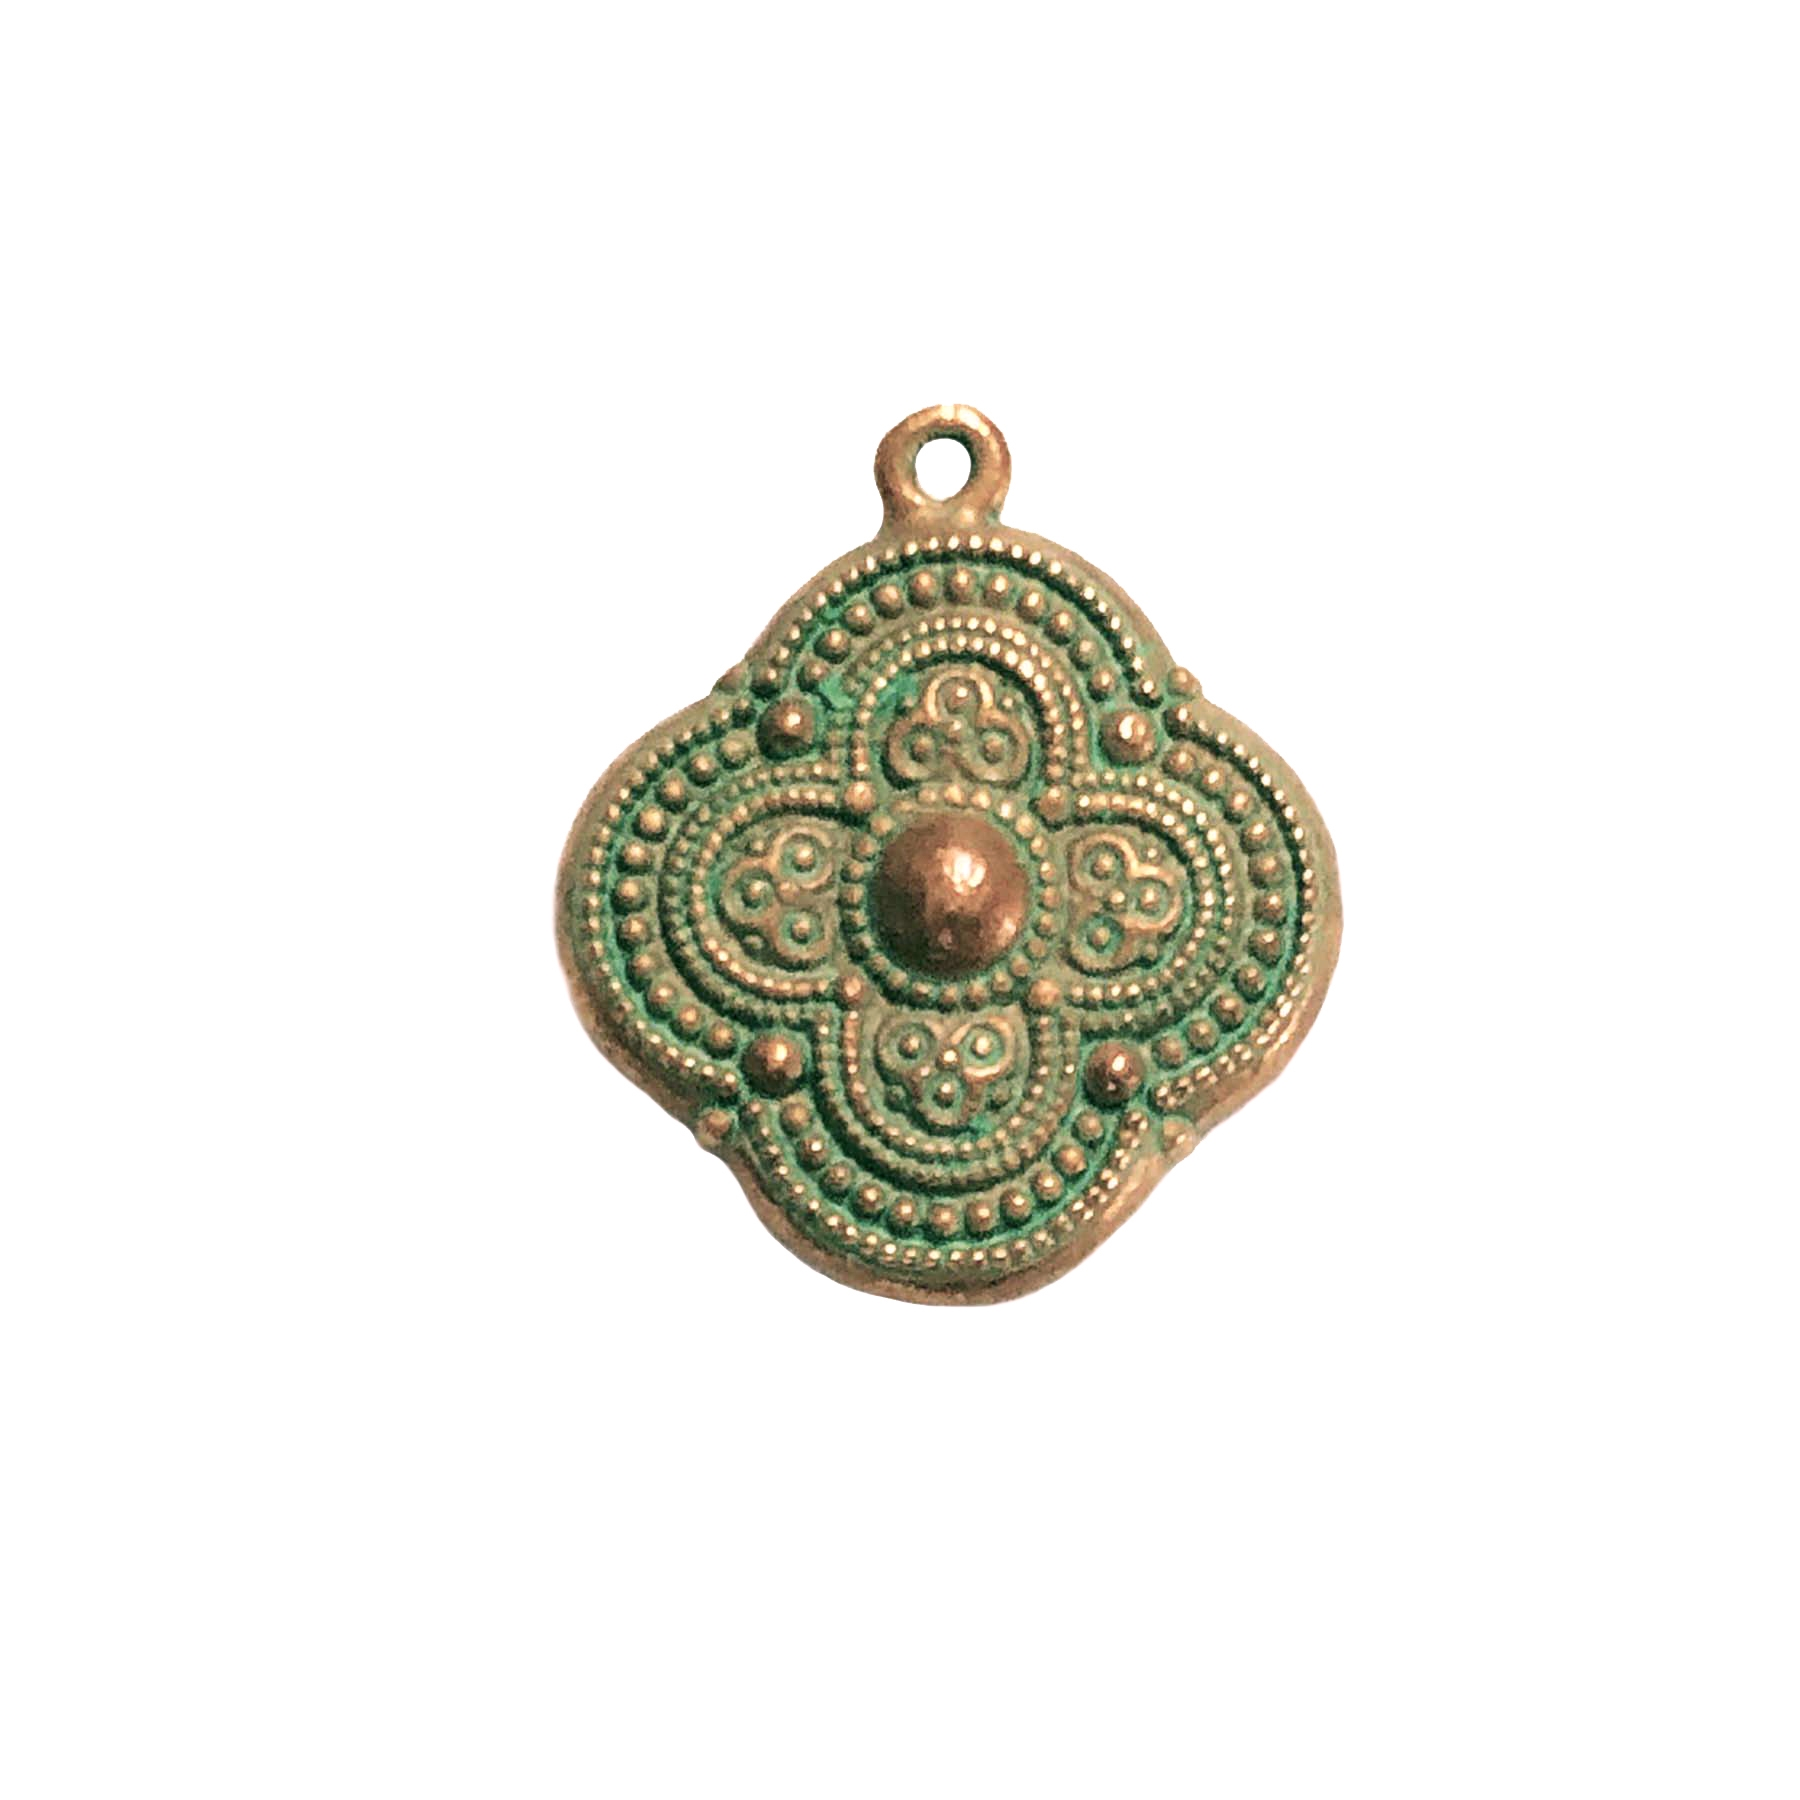 Victorian pendant drop, weathered copper, patina, lead-free pewter, 22mm, drop, pendant drop, B'sue by 1928, weathered copper pewter, vintage jewelry parts, pewter jewelry parts, nickel free, US made, 1928 Company, designer jewelry, B'sue Boutiques, 0657